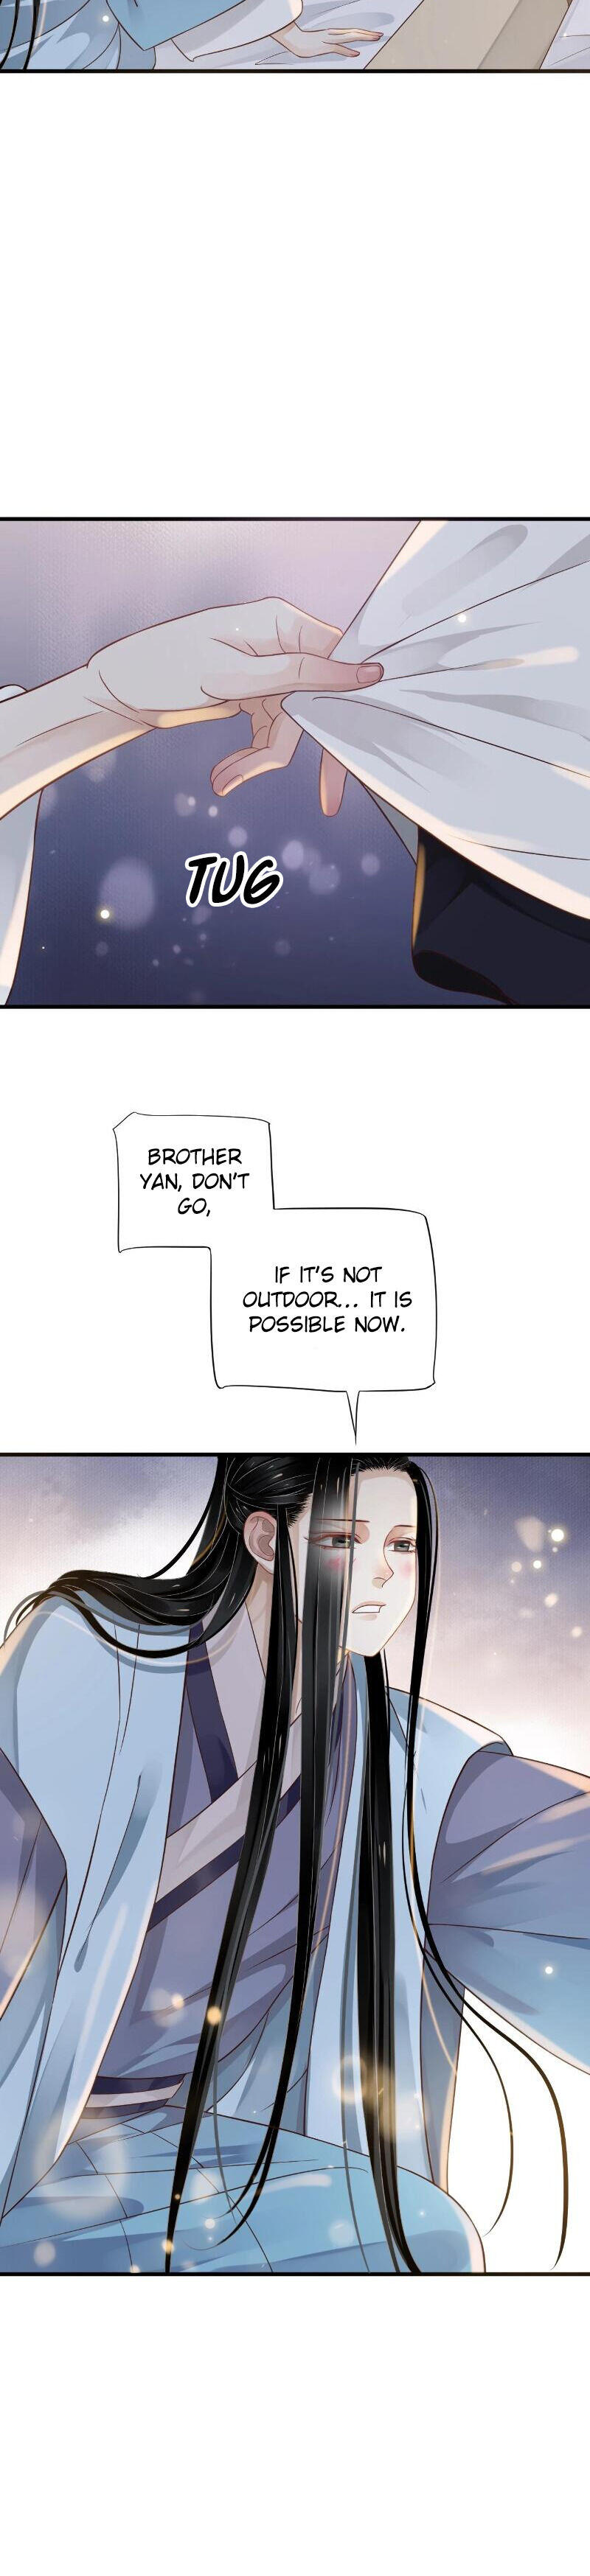 To Be Or Not To Be Chapter 84 page 20 - Mangakakalots.com